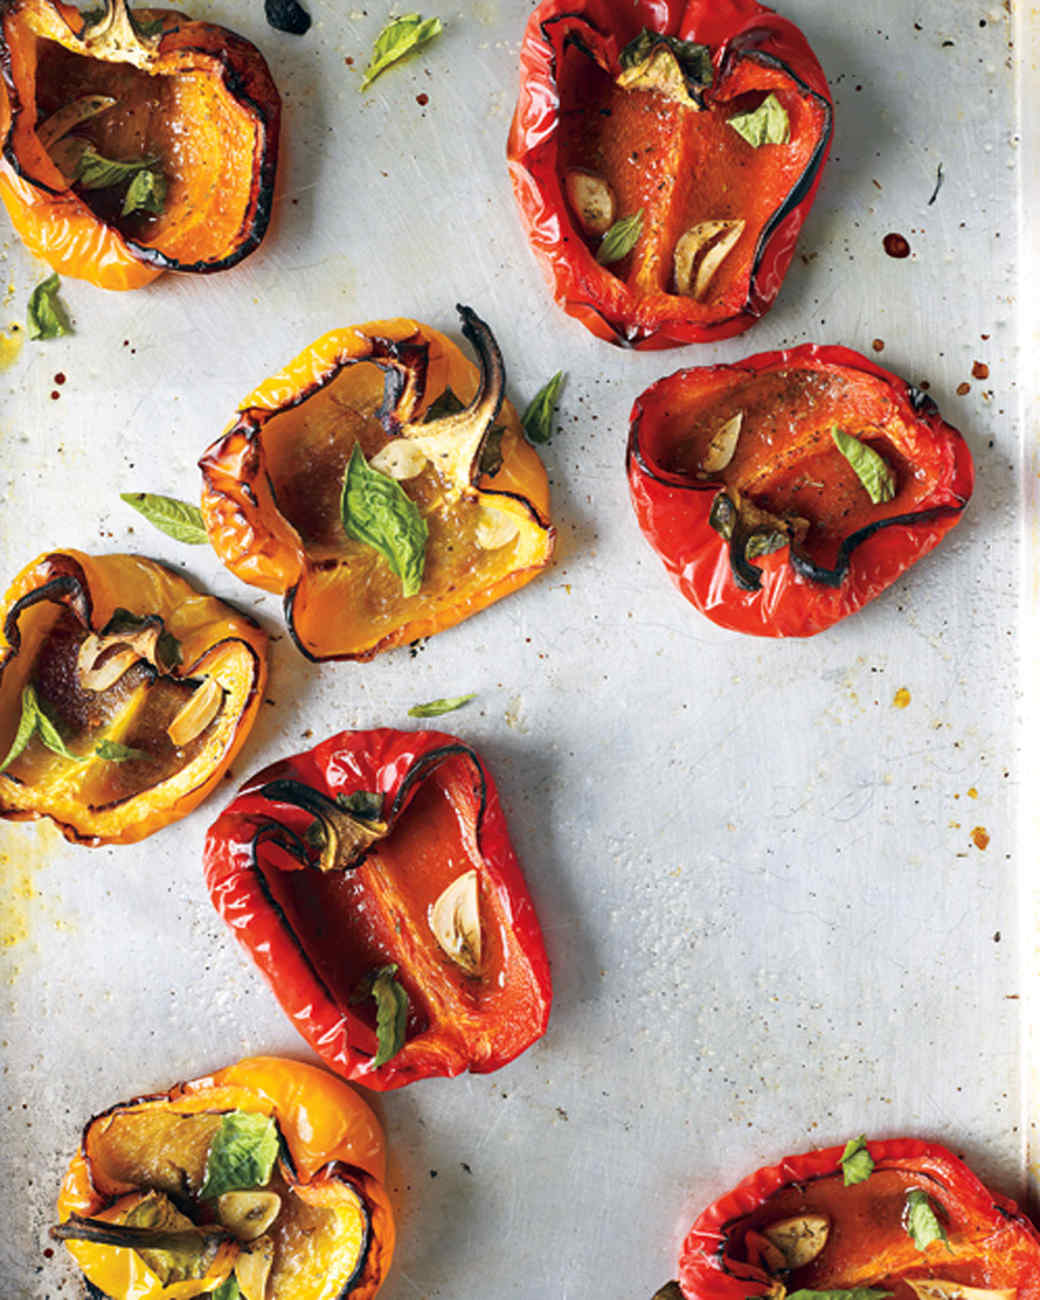 med105604_0610_roasted_pepper.jpg